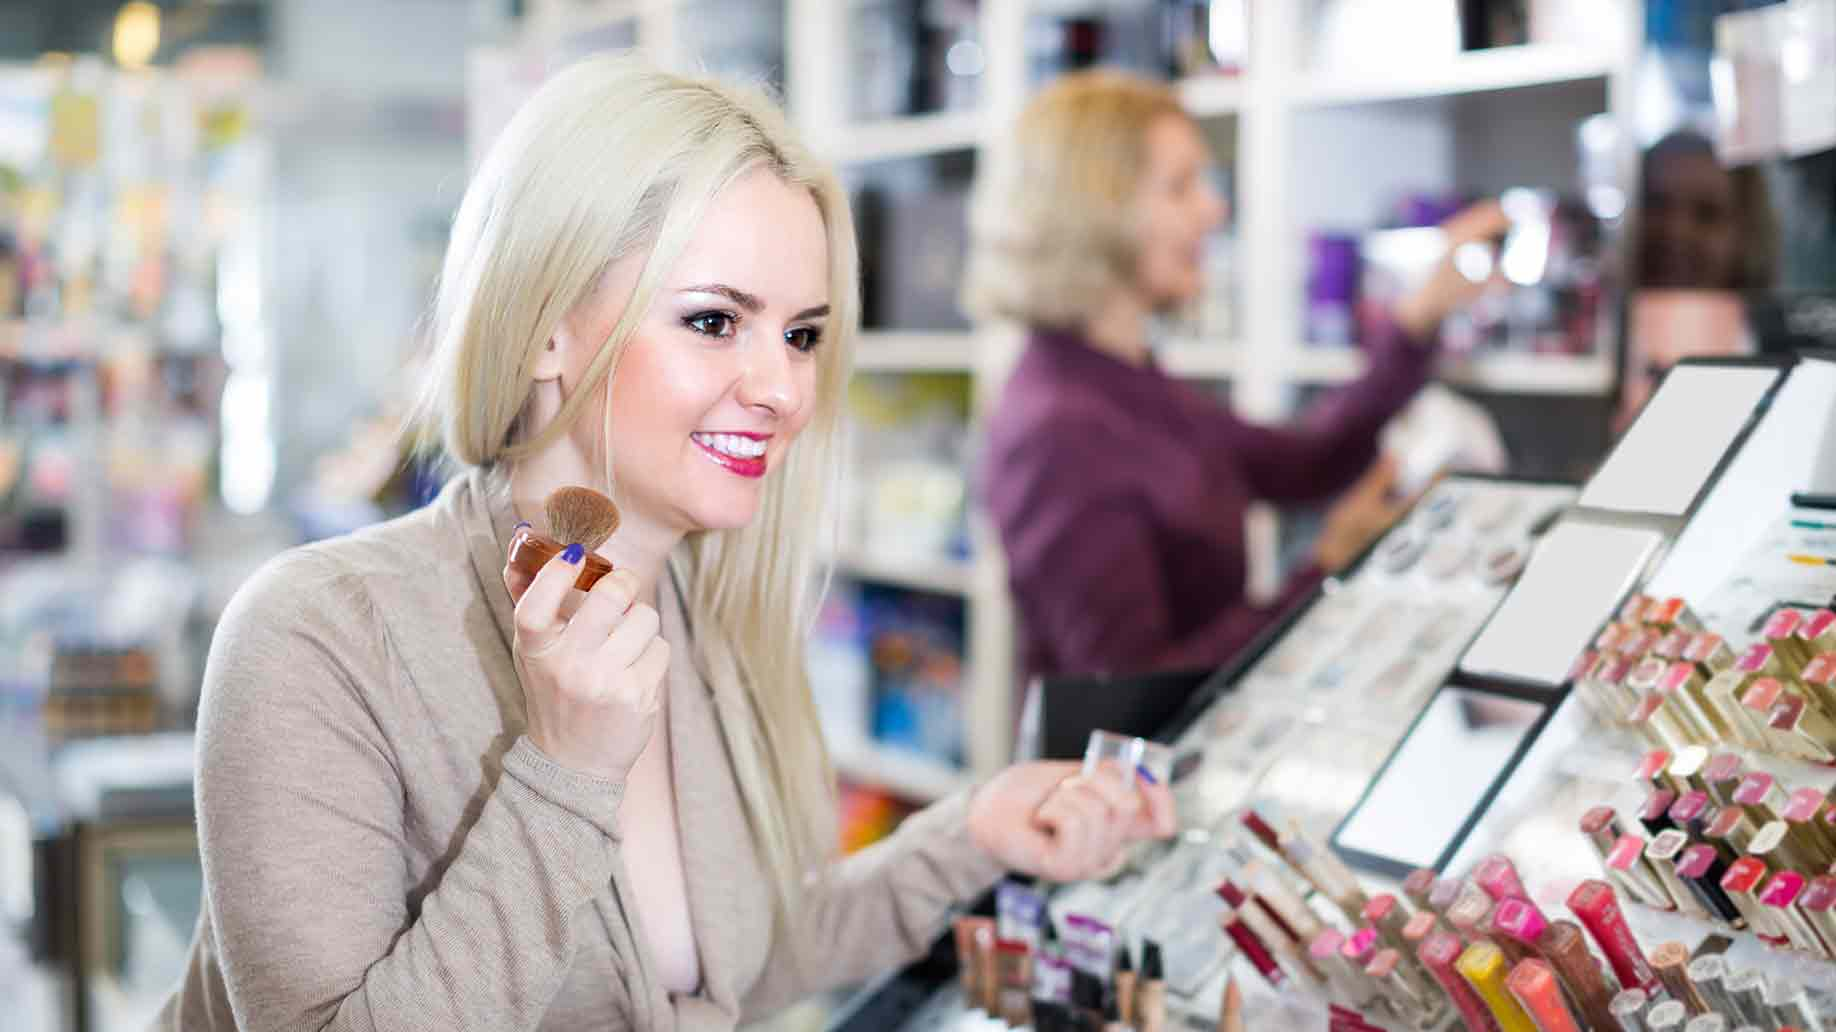 Girl visit cosmetic store choosing face powder